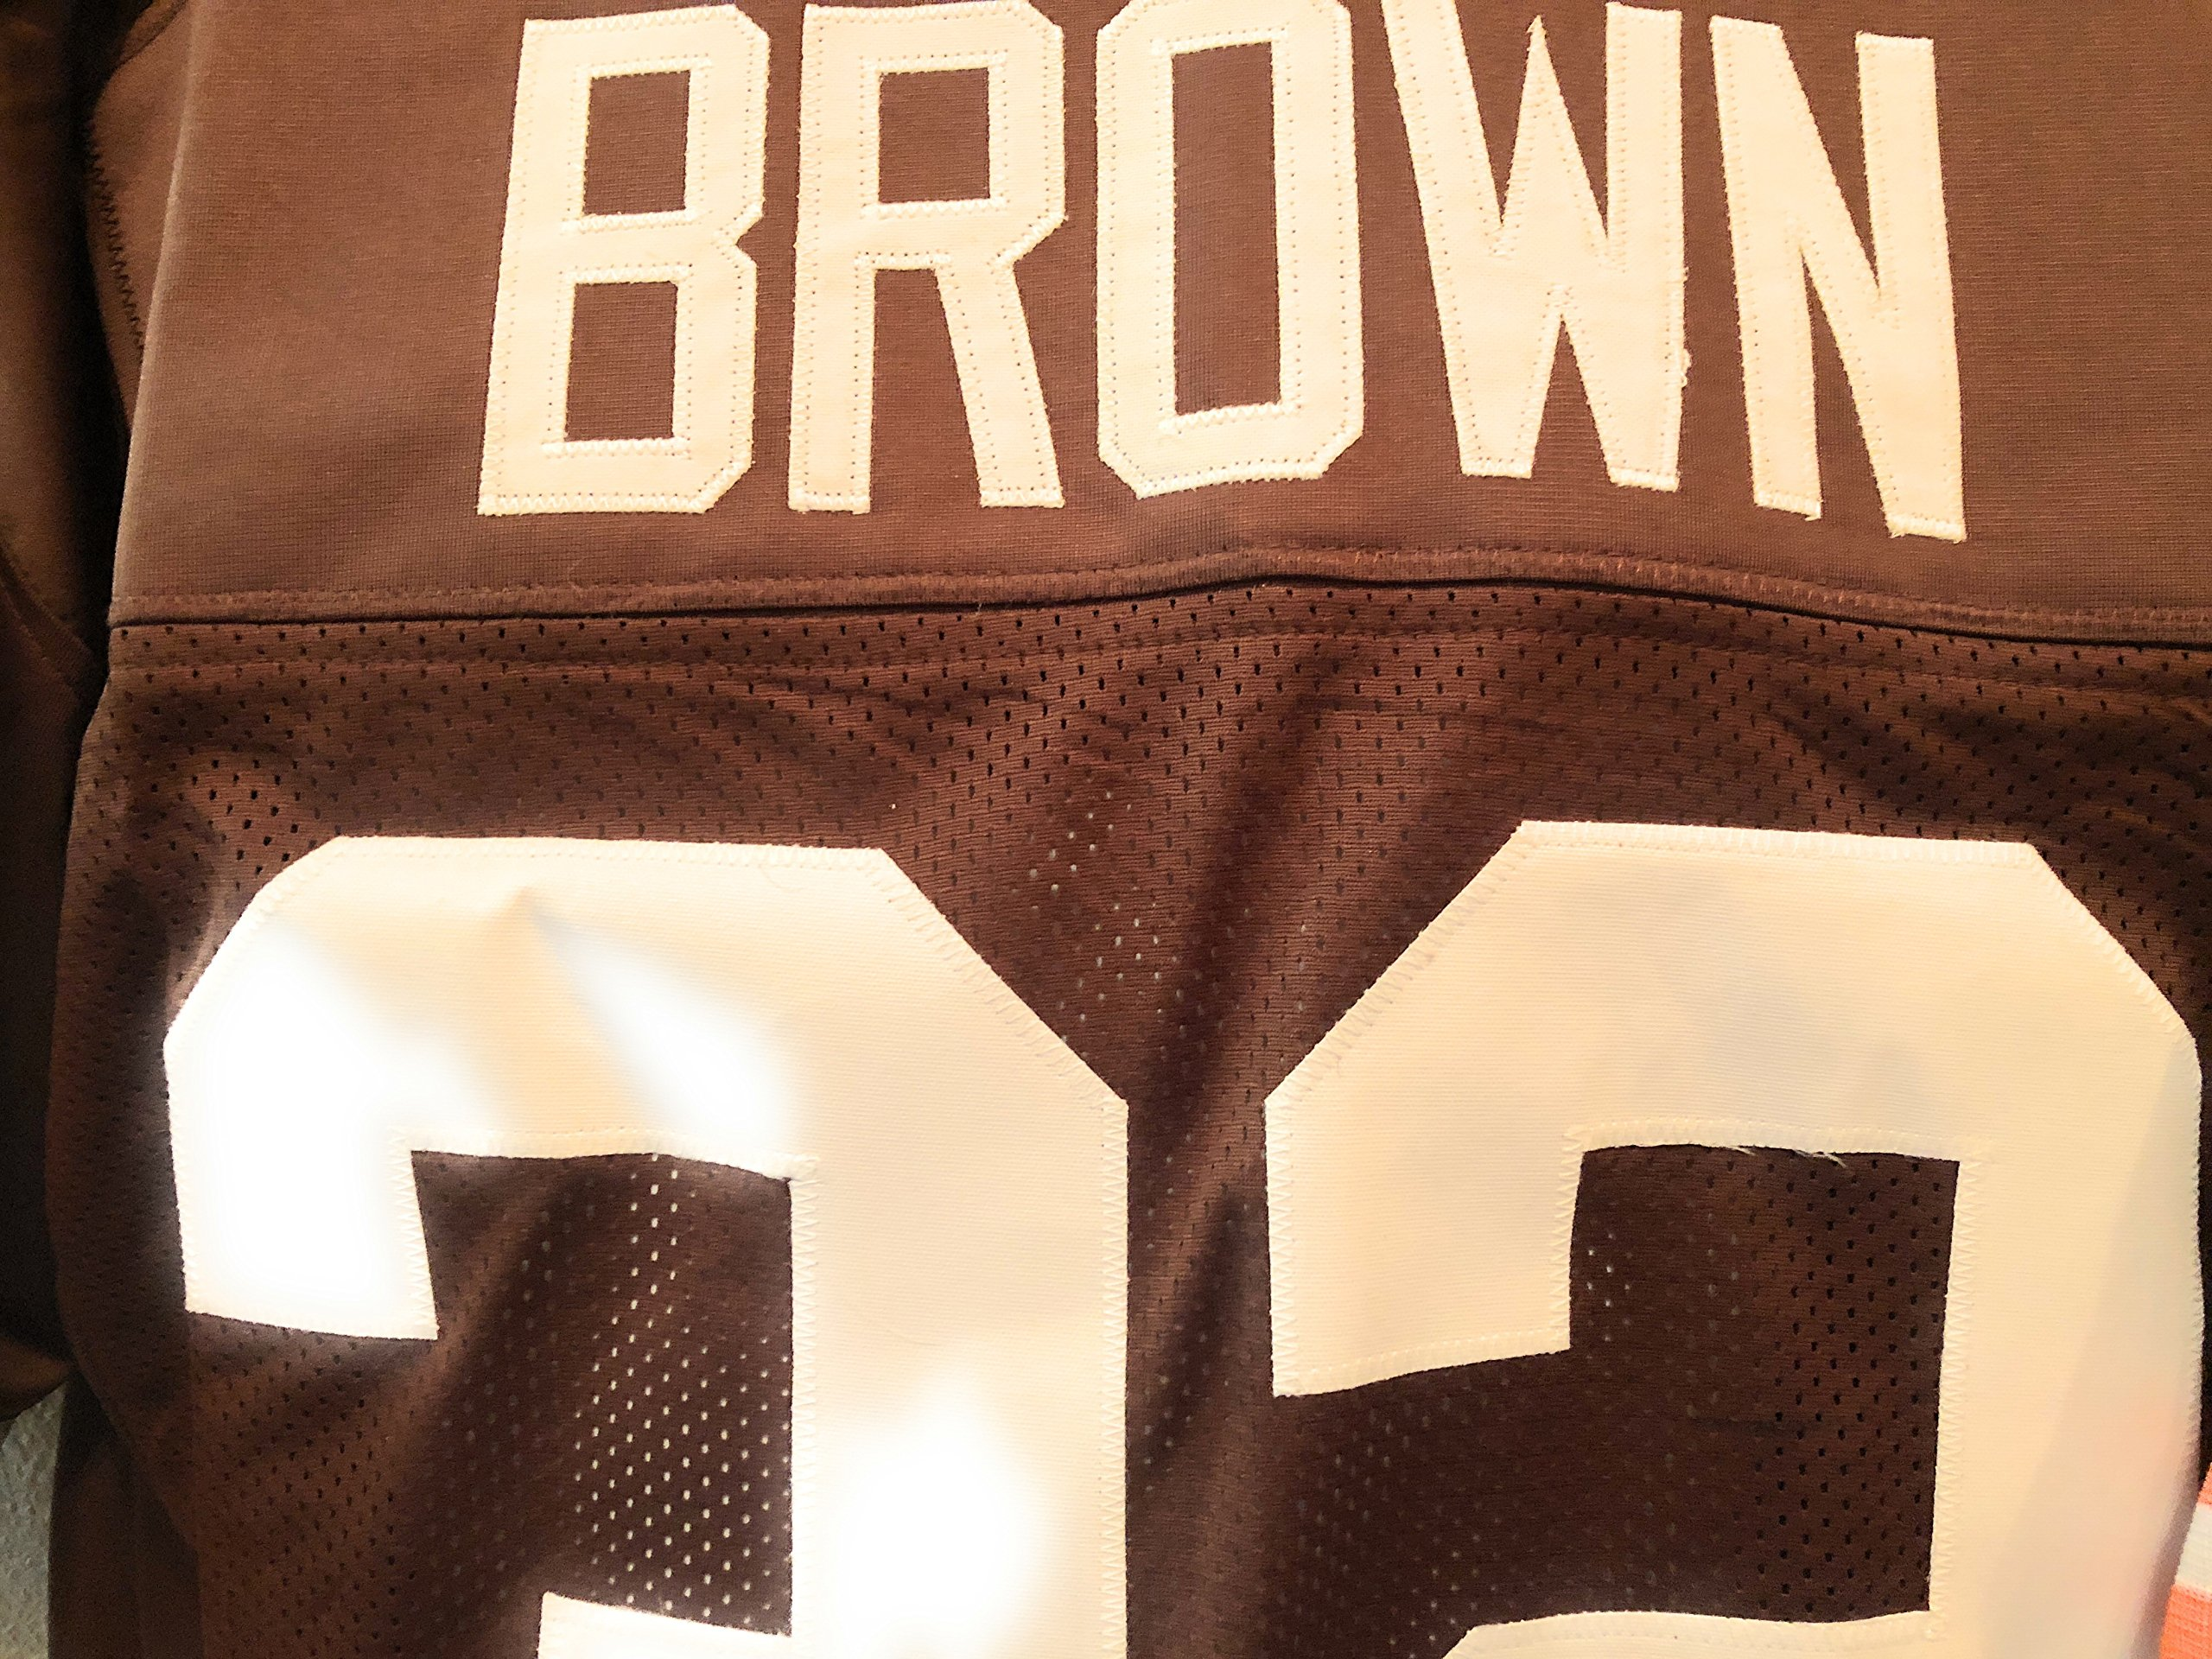 Jim Brown Cleveland Browns Signed Autograph Custom Jersey JSA Witnessed Certified